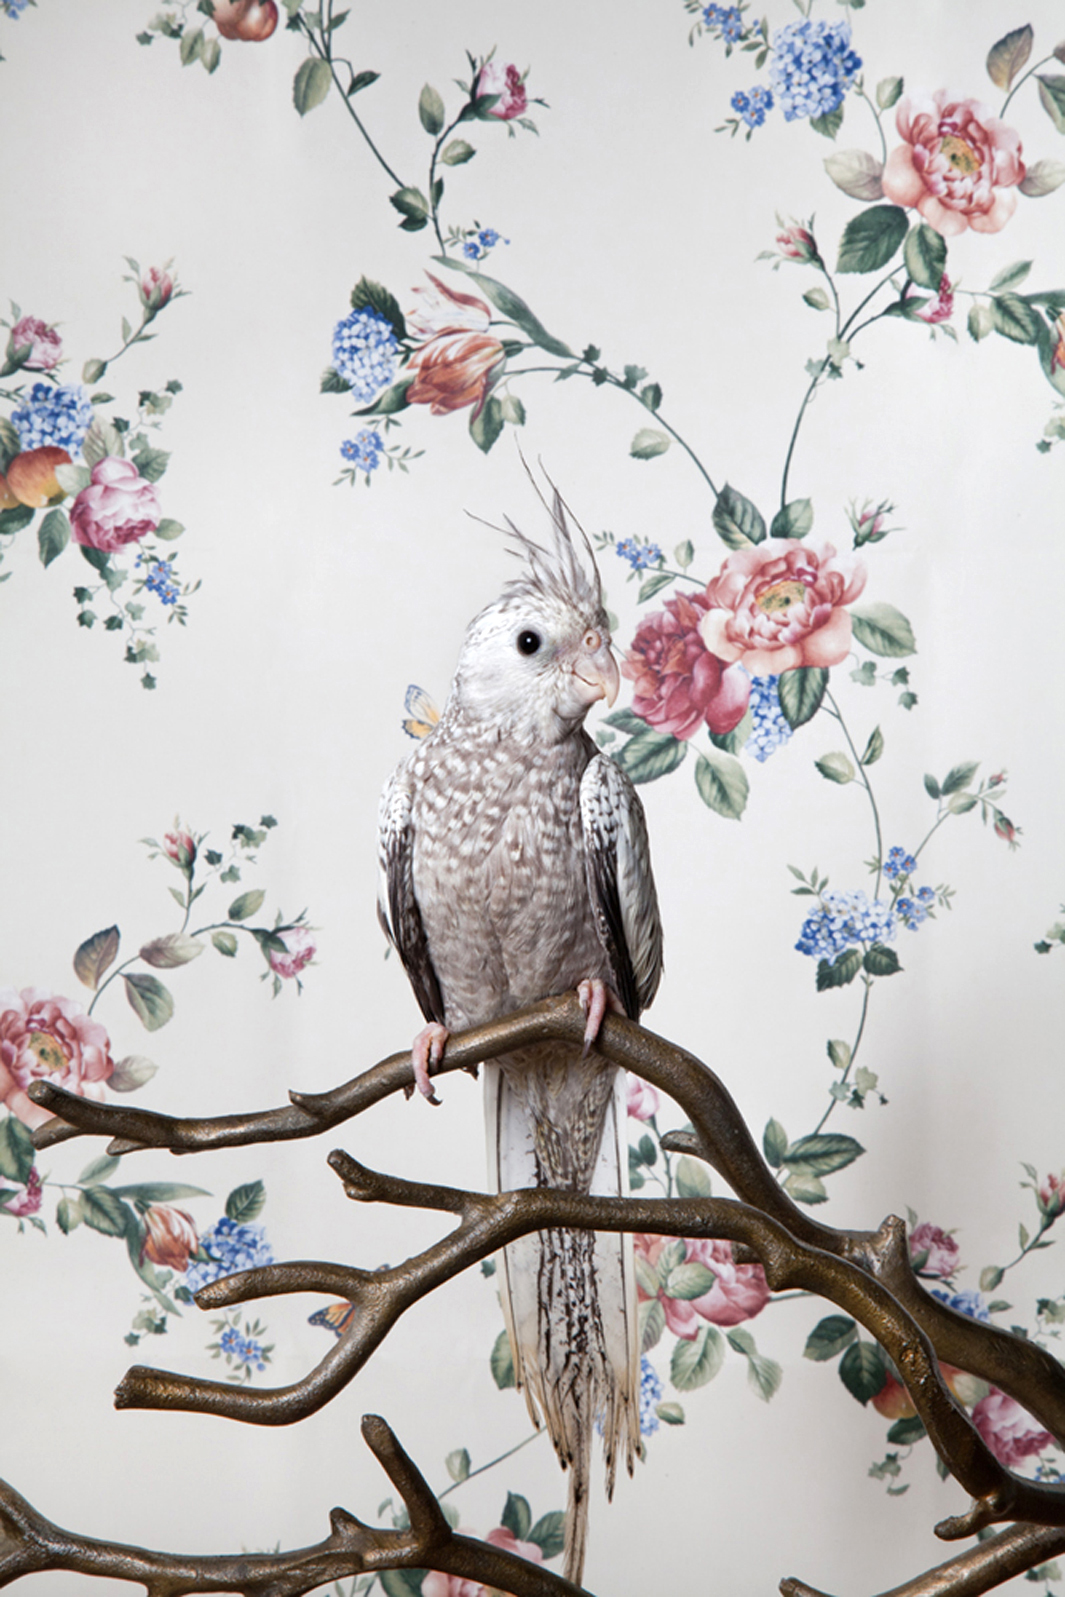 Claire Rosen | White Faced Hurled Cockatiel in front of a Vintage Wallpaper